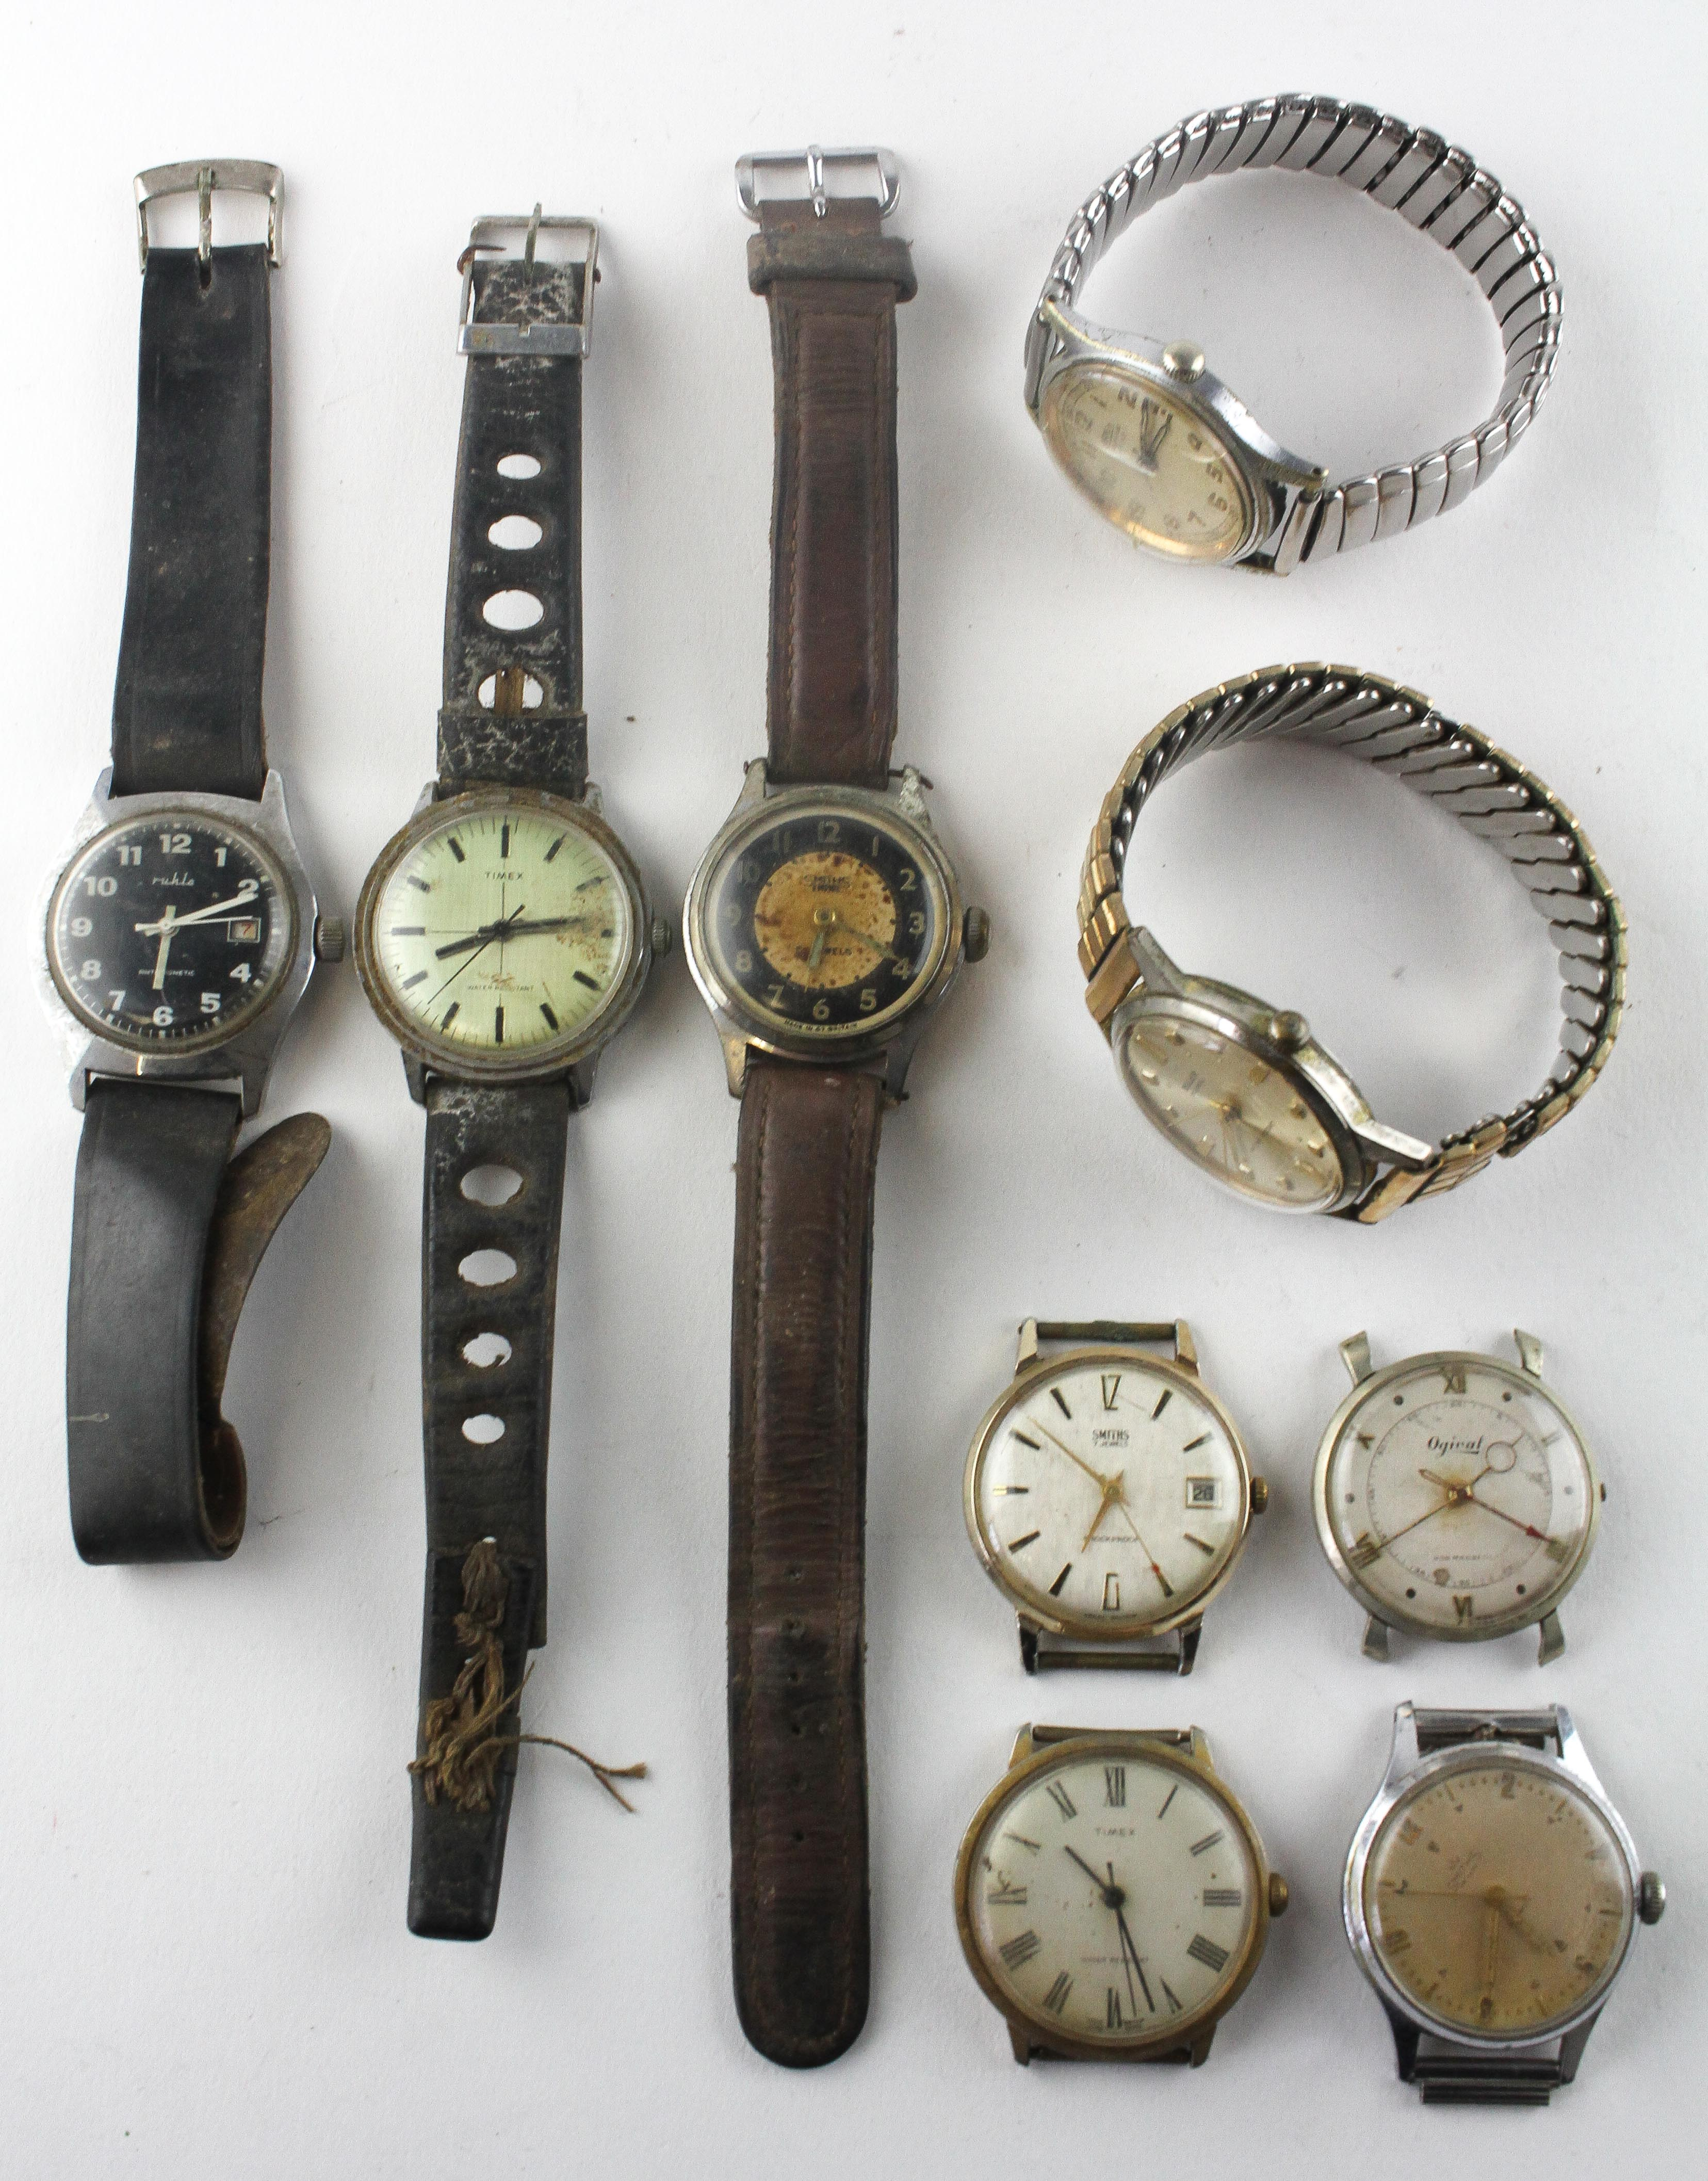 A collection of nine wristwatches of variable designs